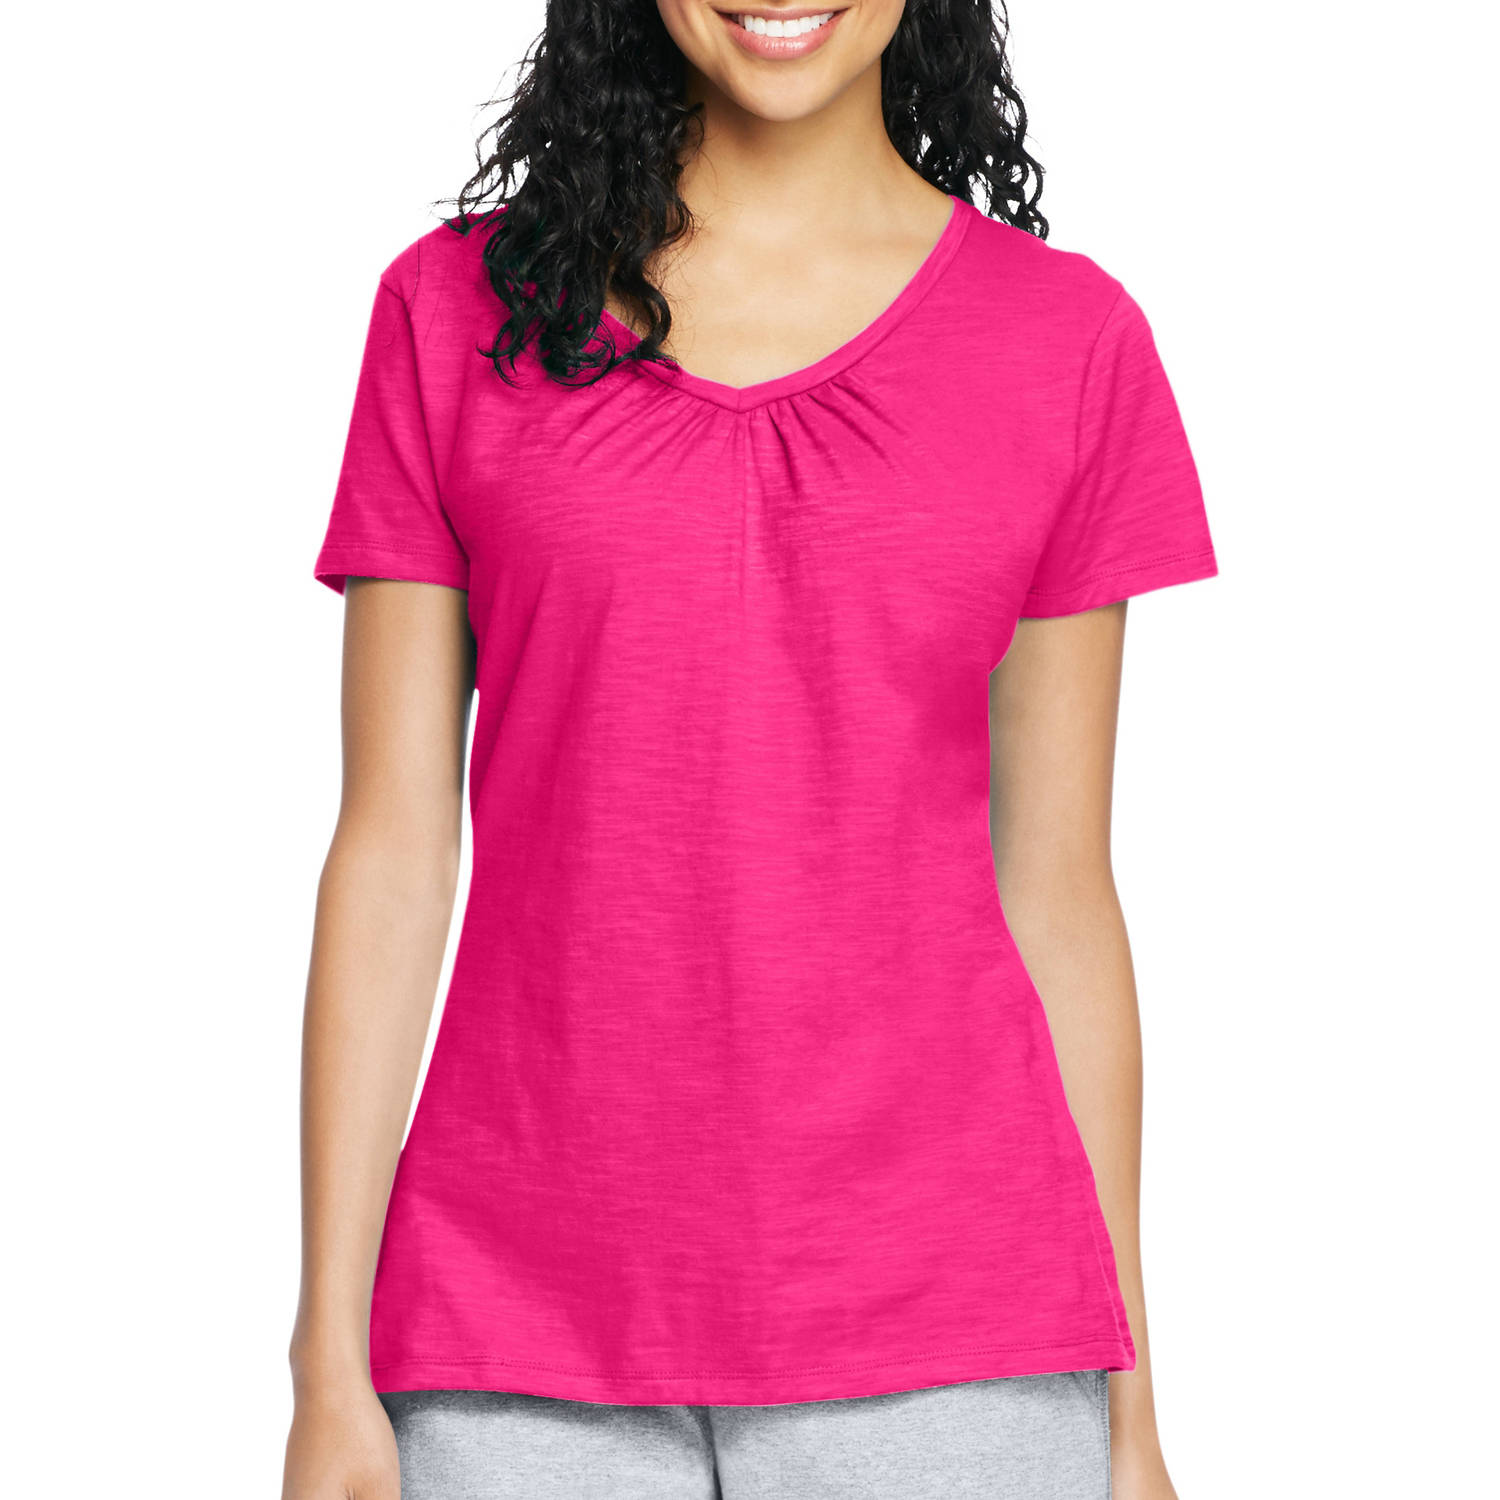 Hanes Women's Slub Shirred V-Neck T-shirt